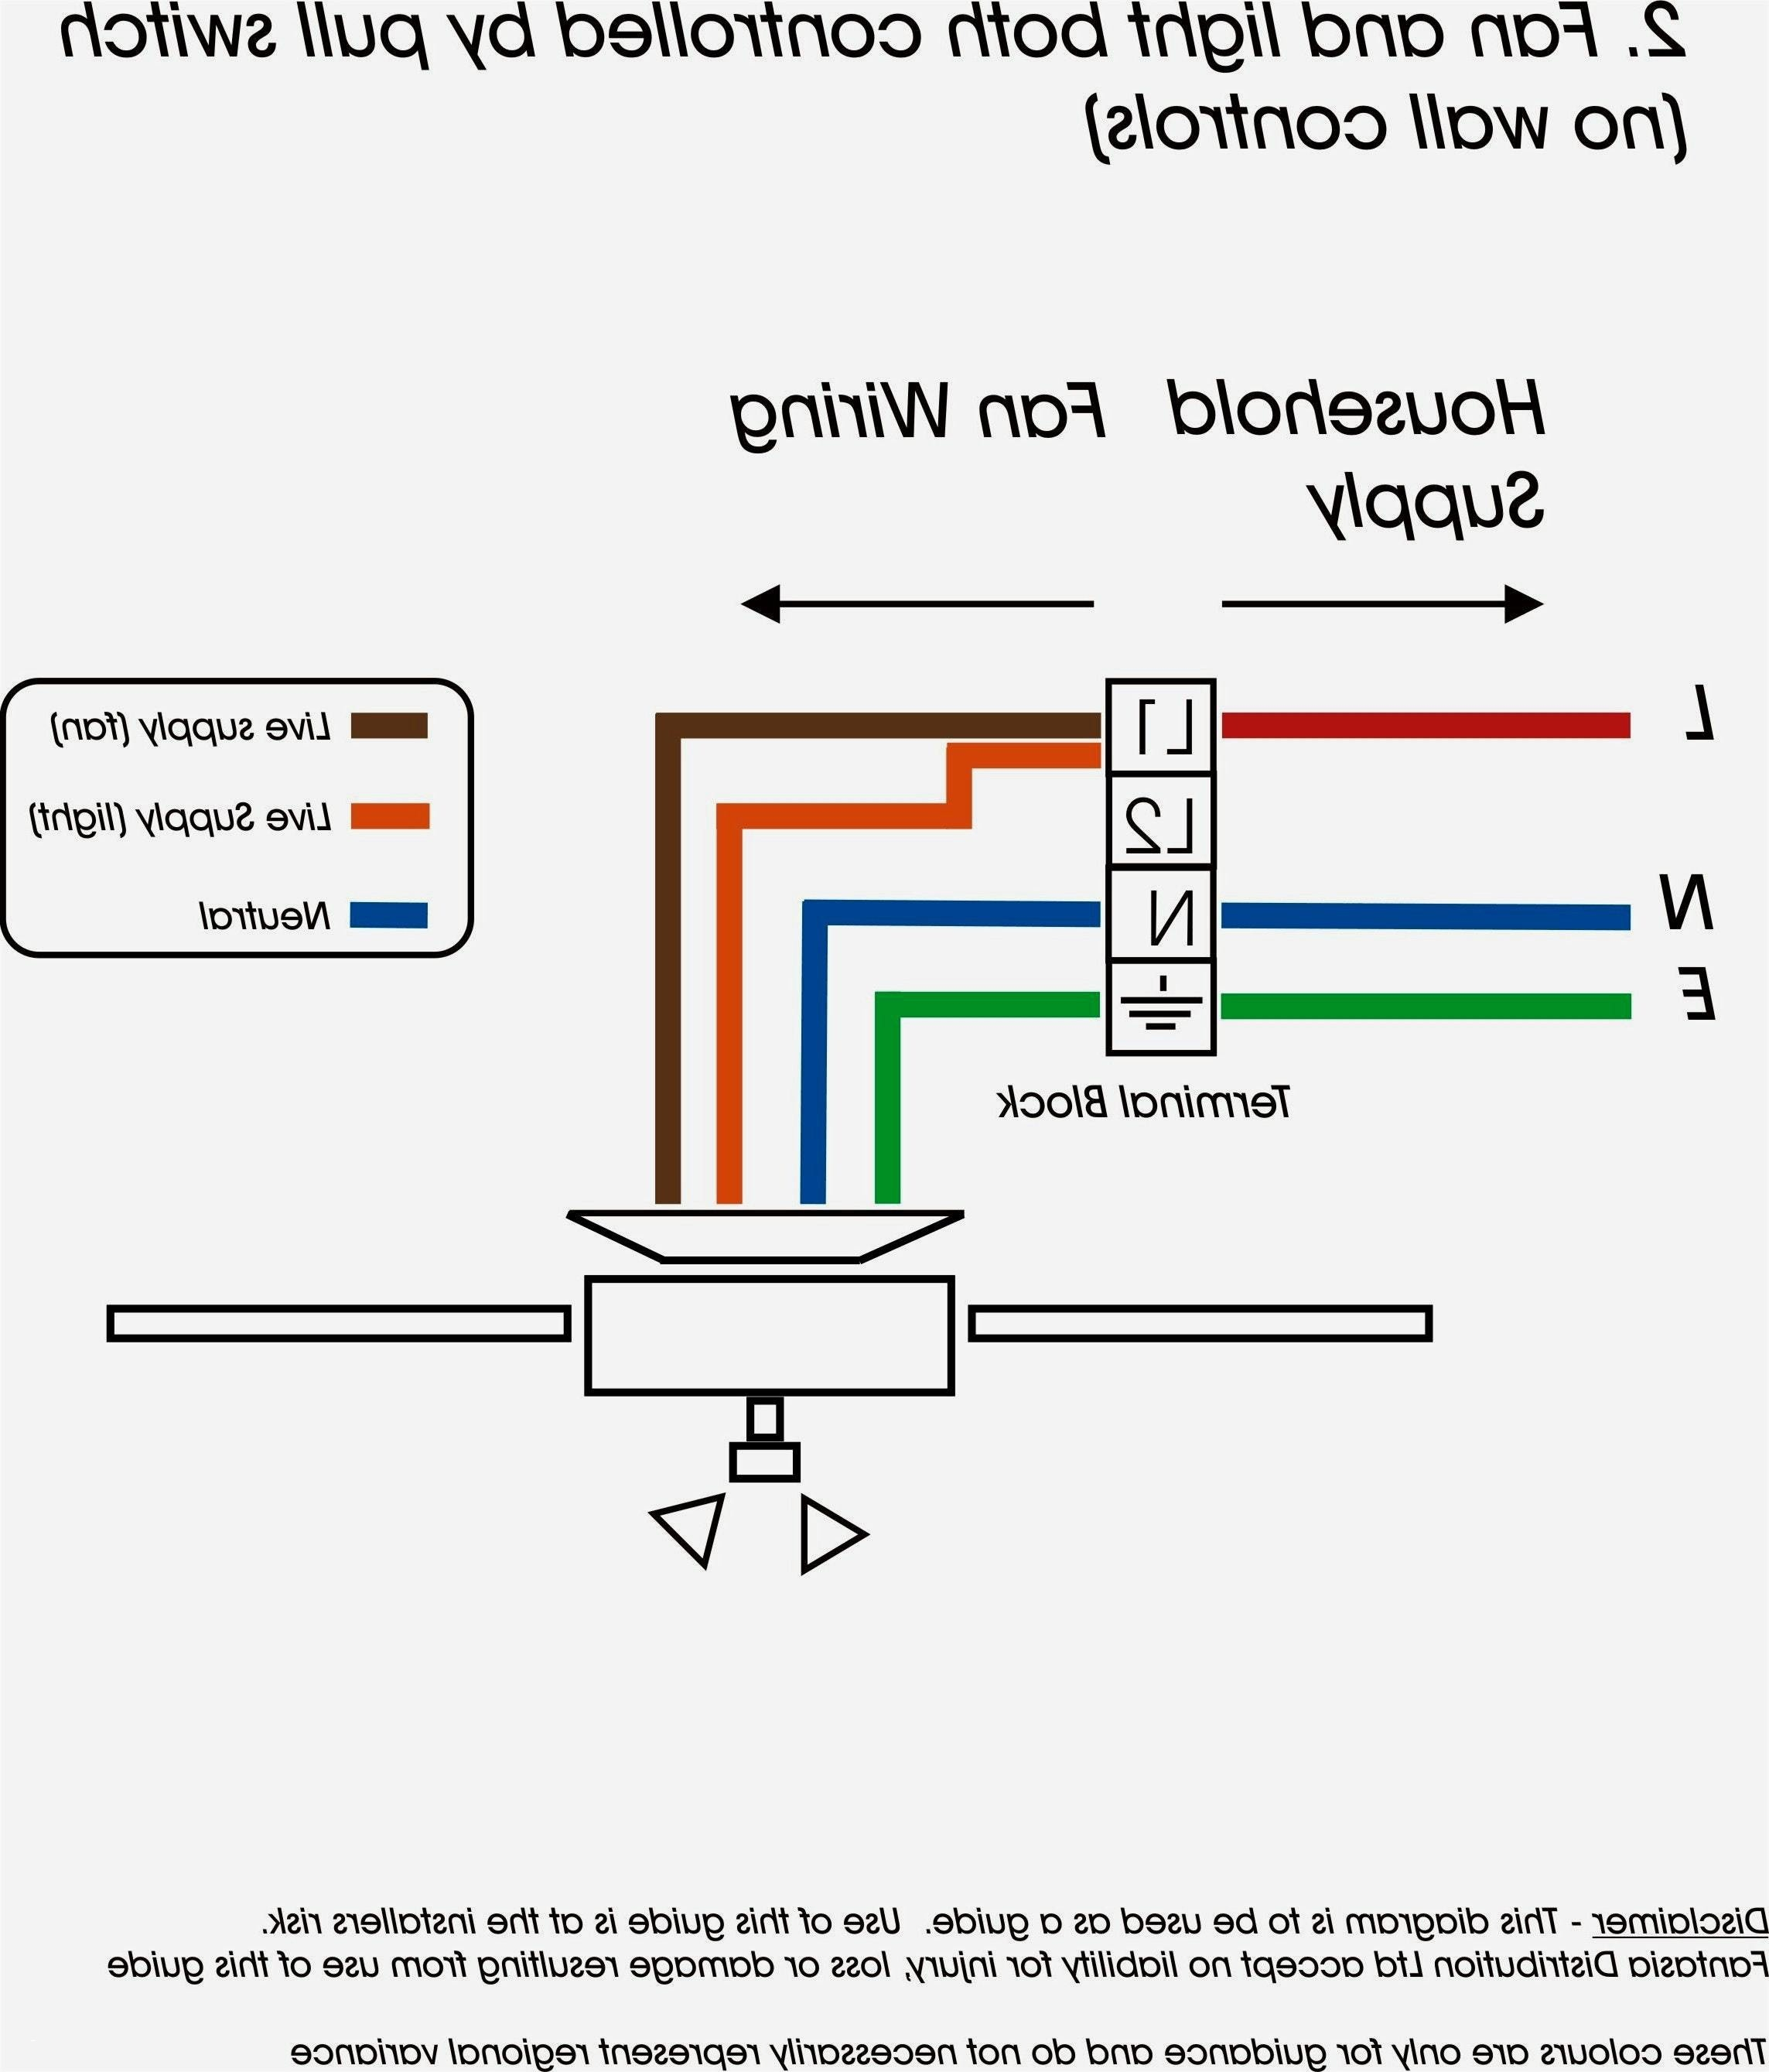 kbmd 240d wiring diagram Collection-hunter fan wiring diagram Download Ceiling Fan Wire Diagram Inspirational Wiring Diagram Examples Archives L2archive DOWNLOAD Wiring Diagram 17-j